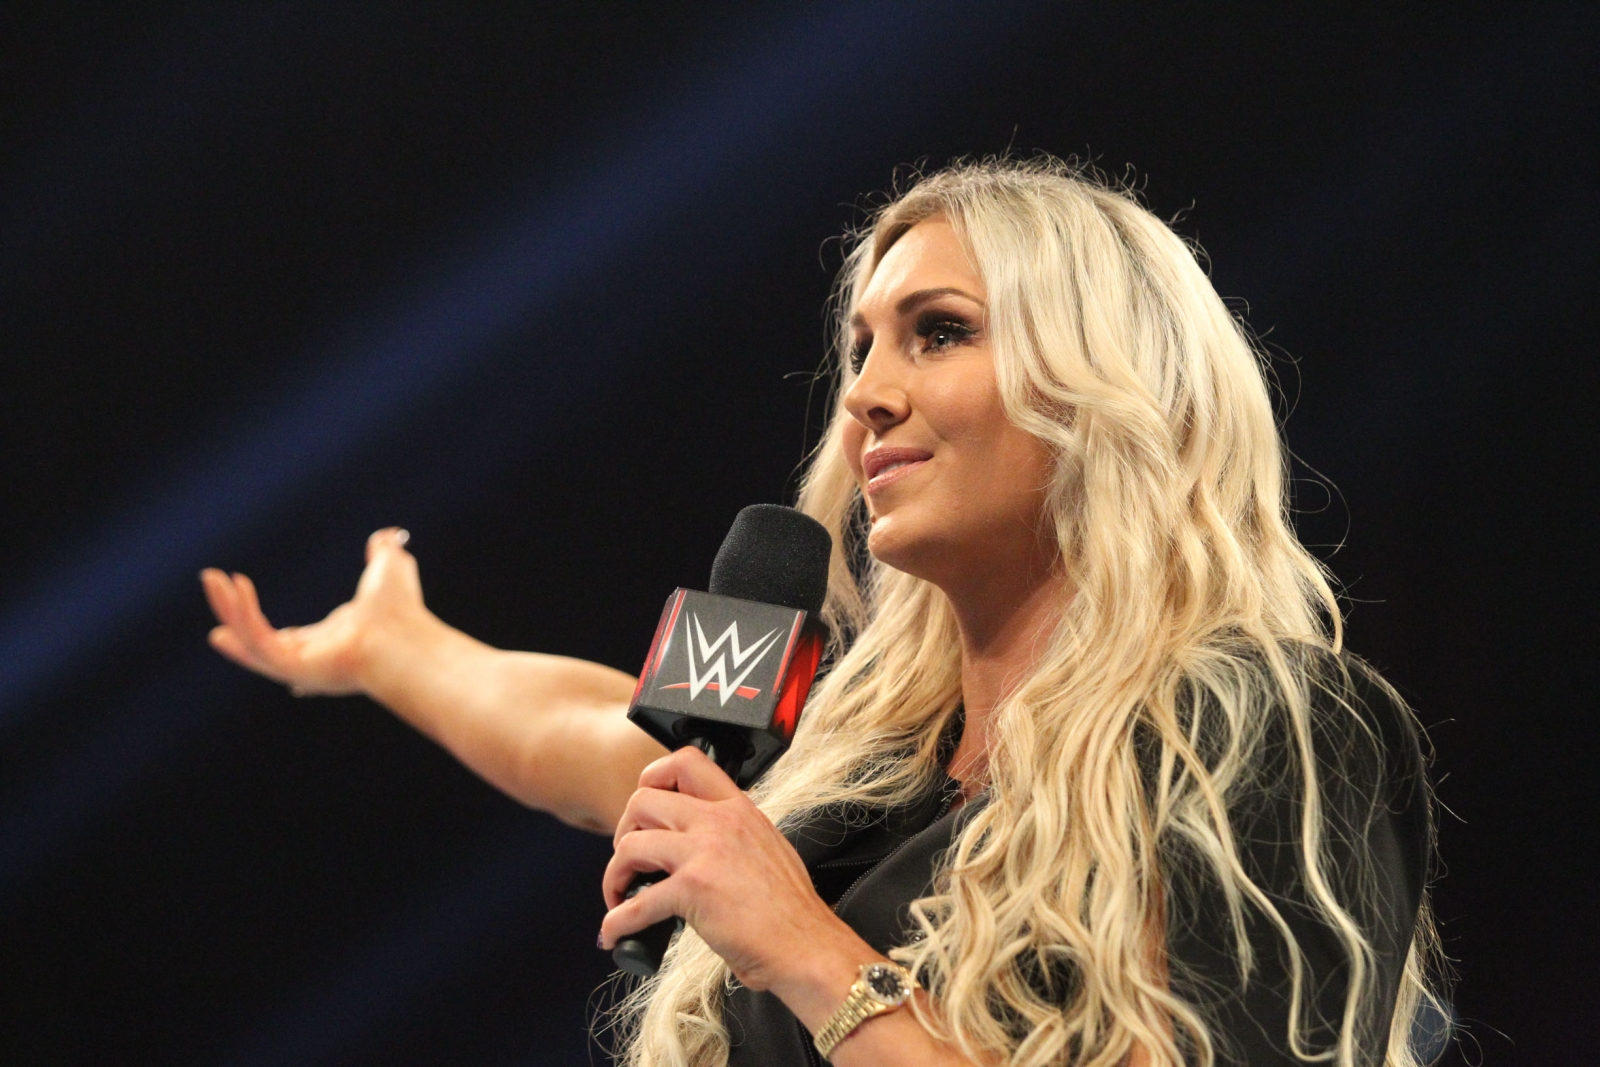 Wwe Star Charlotte Flair Comments On Her Nude Photos -5204